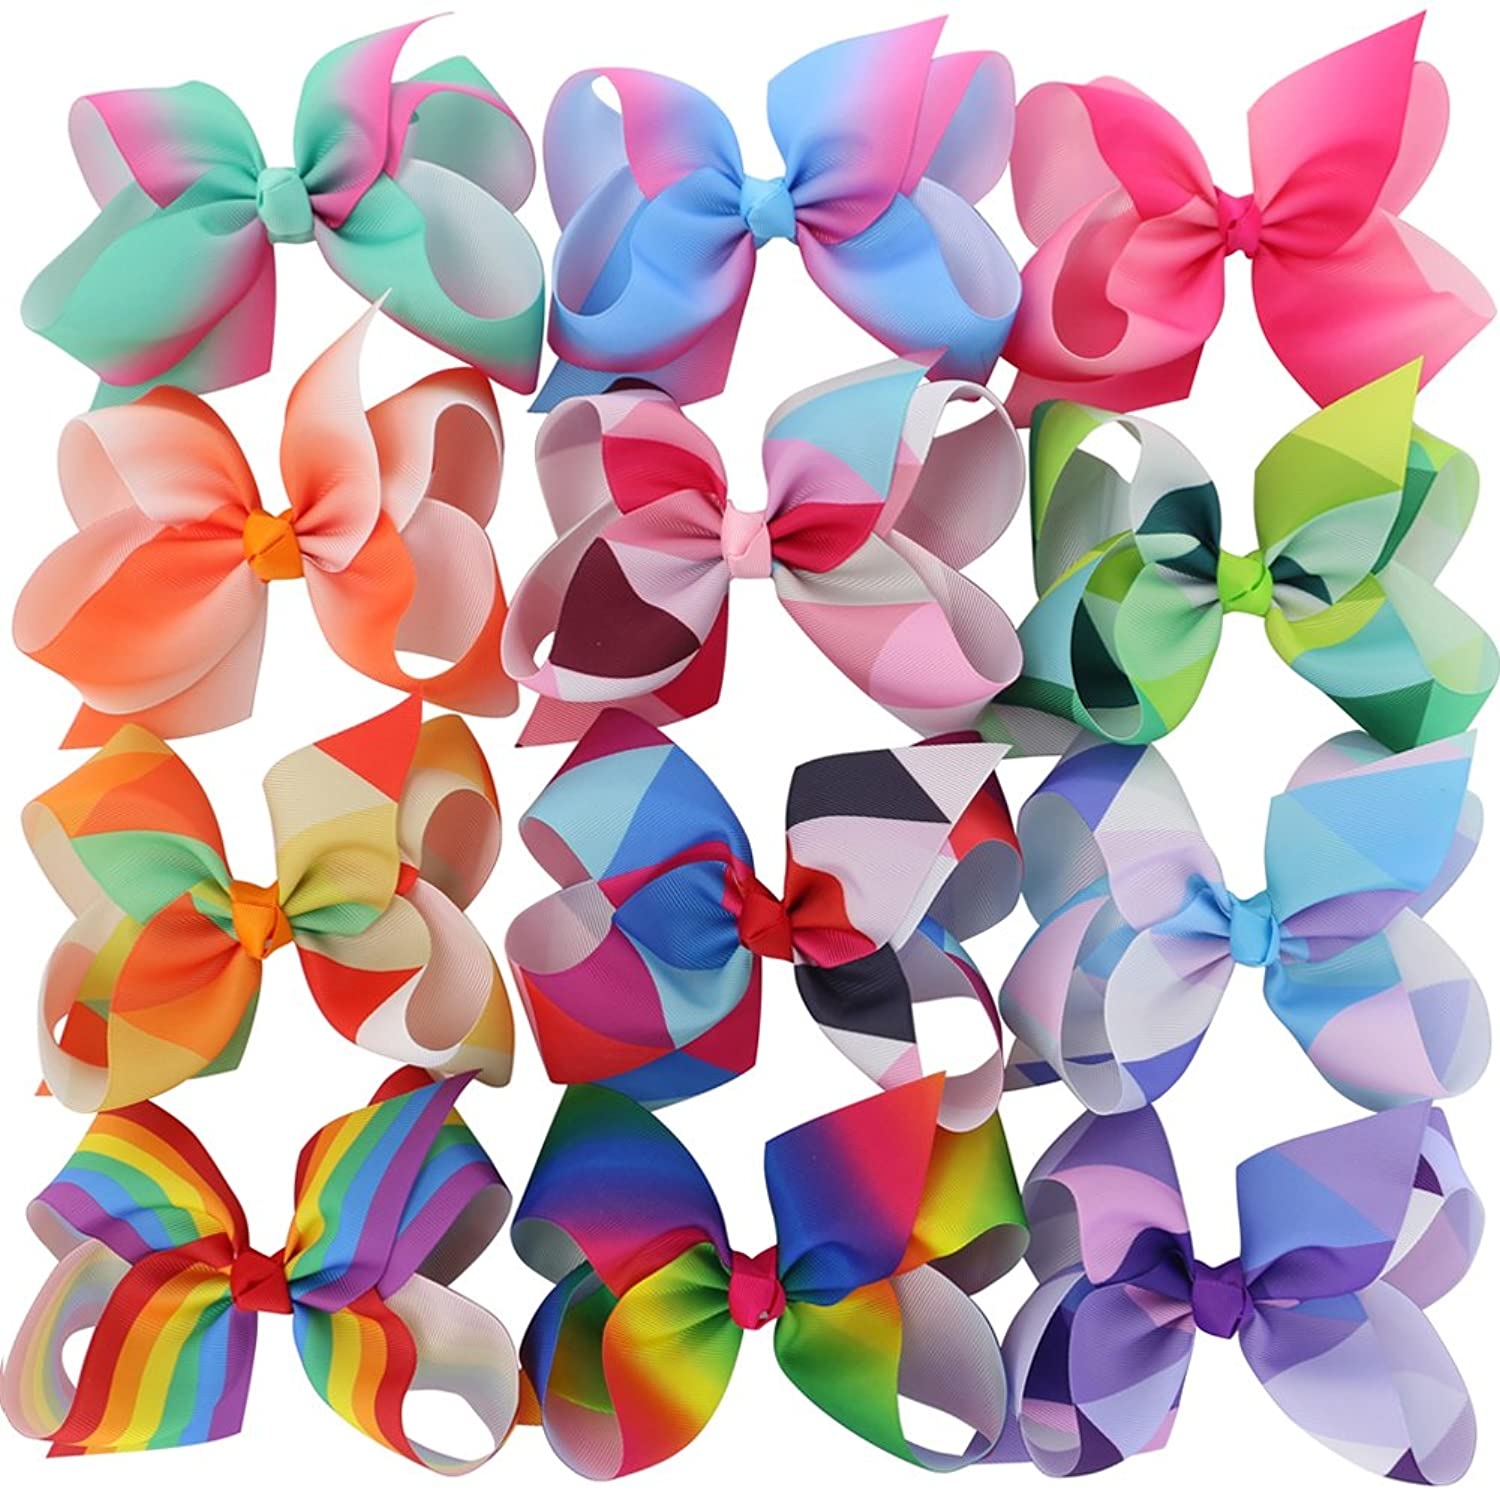 Be best hair accessories for baby - Big Larger Grosgrain Ribbon Boutique 6in Rainbow Hair Bows Clips For Baby Girls Teens Toddlers Gifts